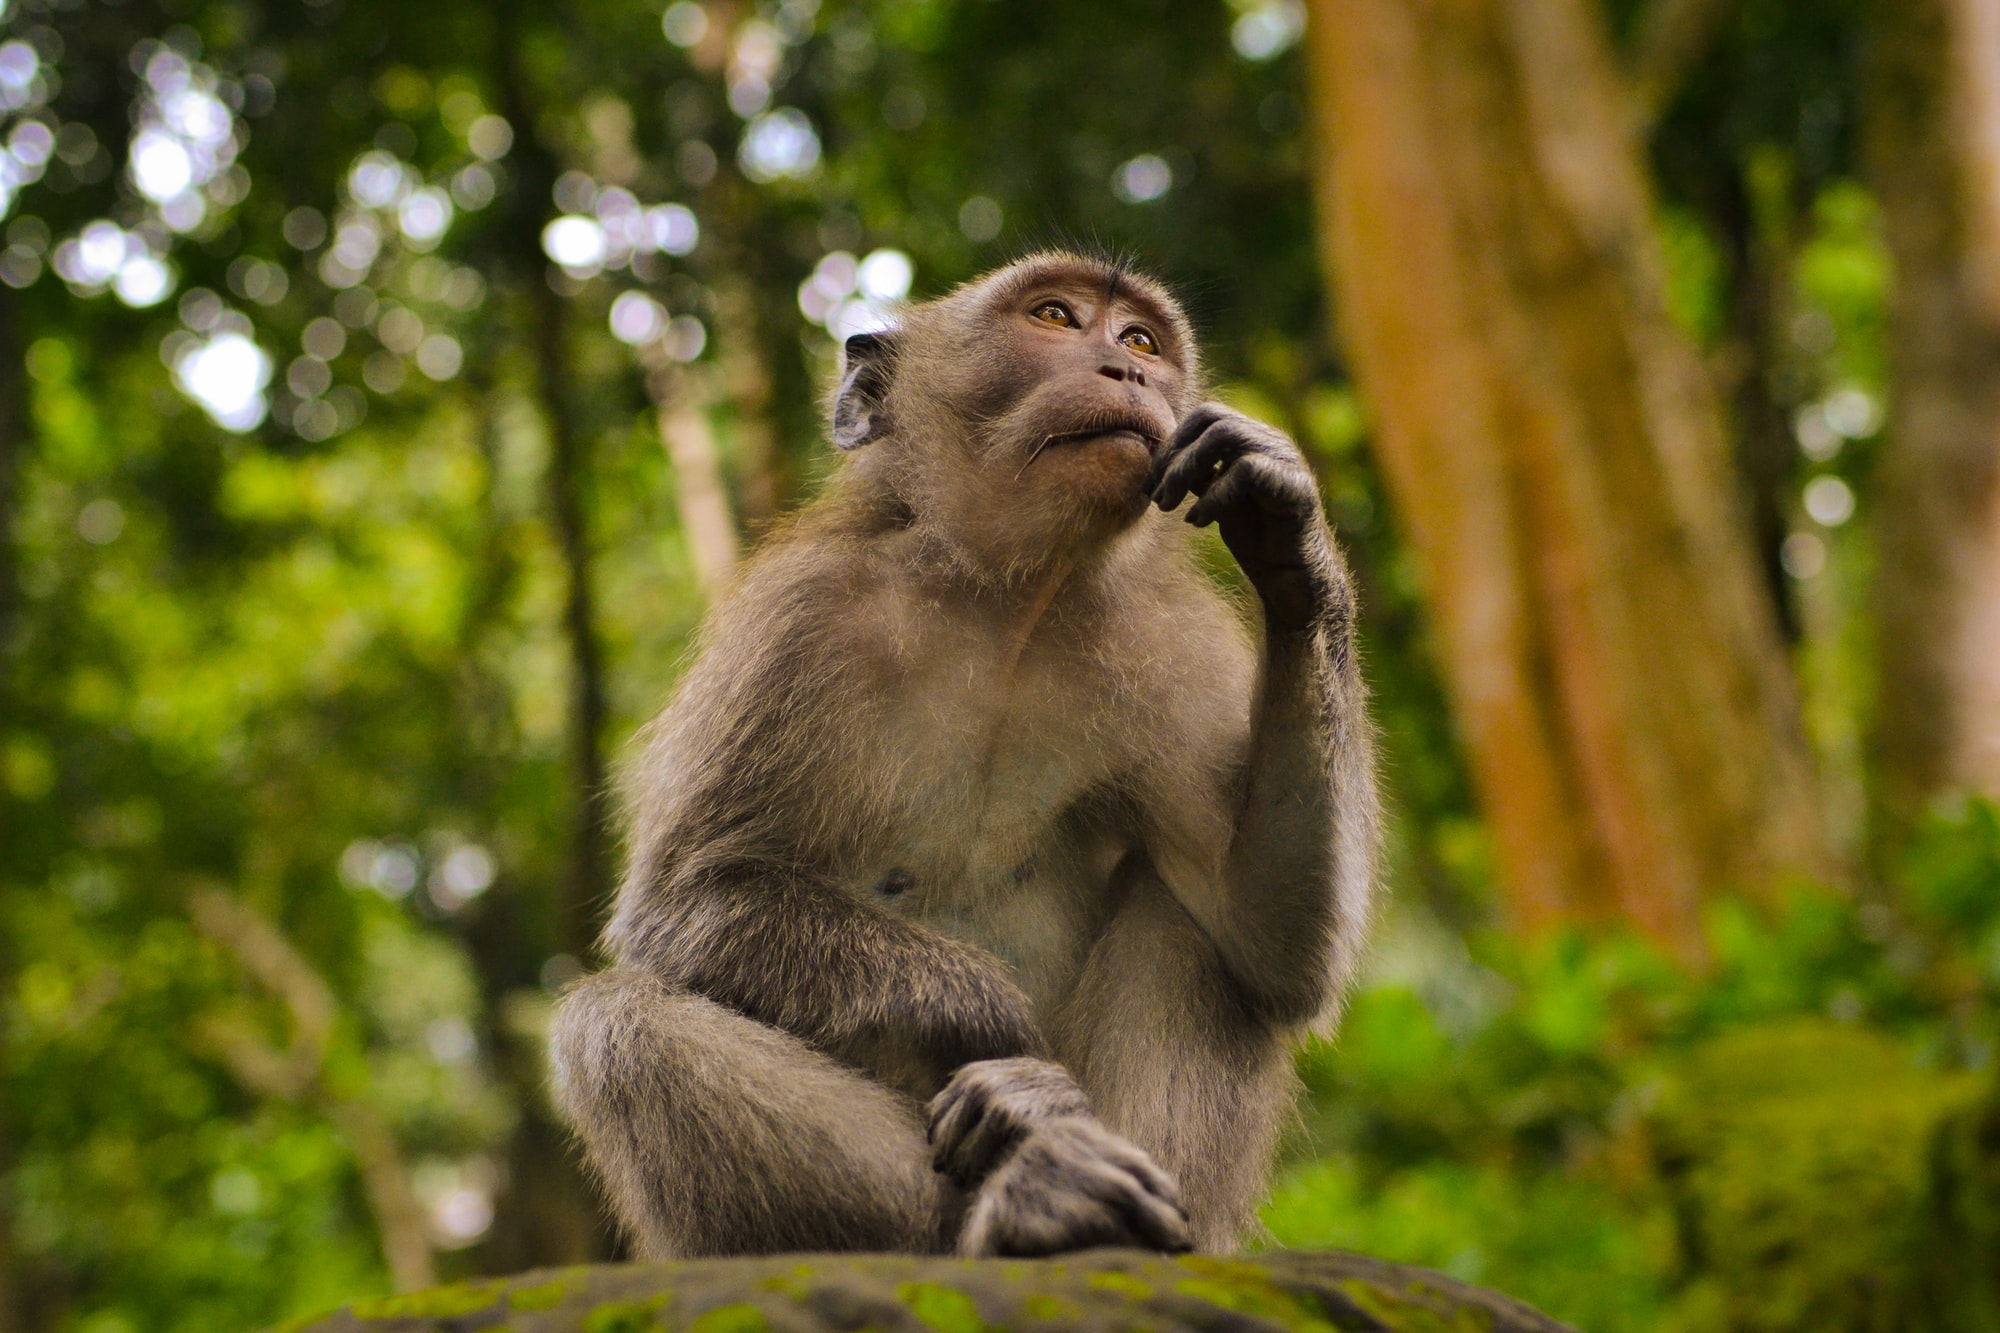 I shot this in Monkey Forest Bali, Indonesia. I saw the monkey just sat and give it a good shoot, this came out from the camera.